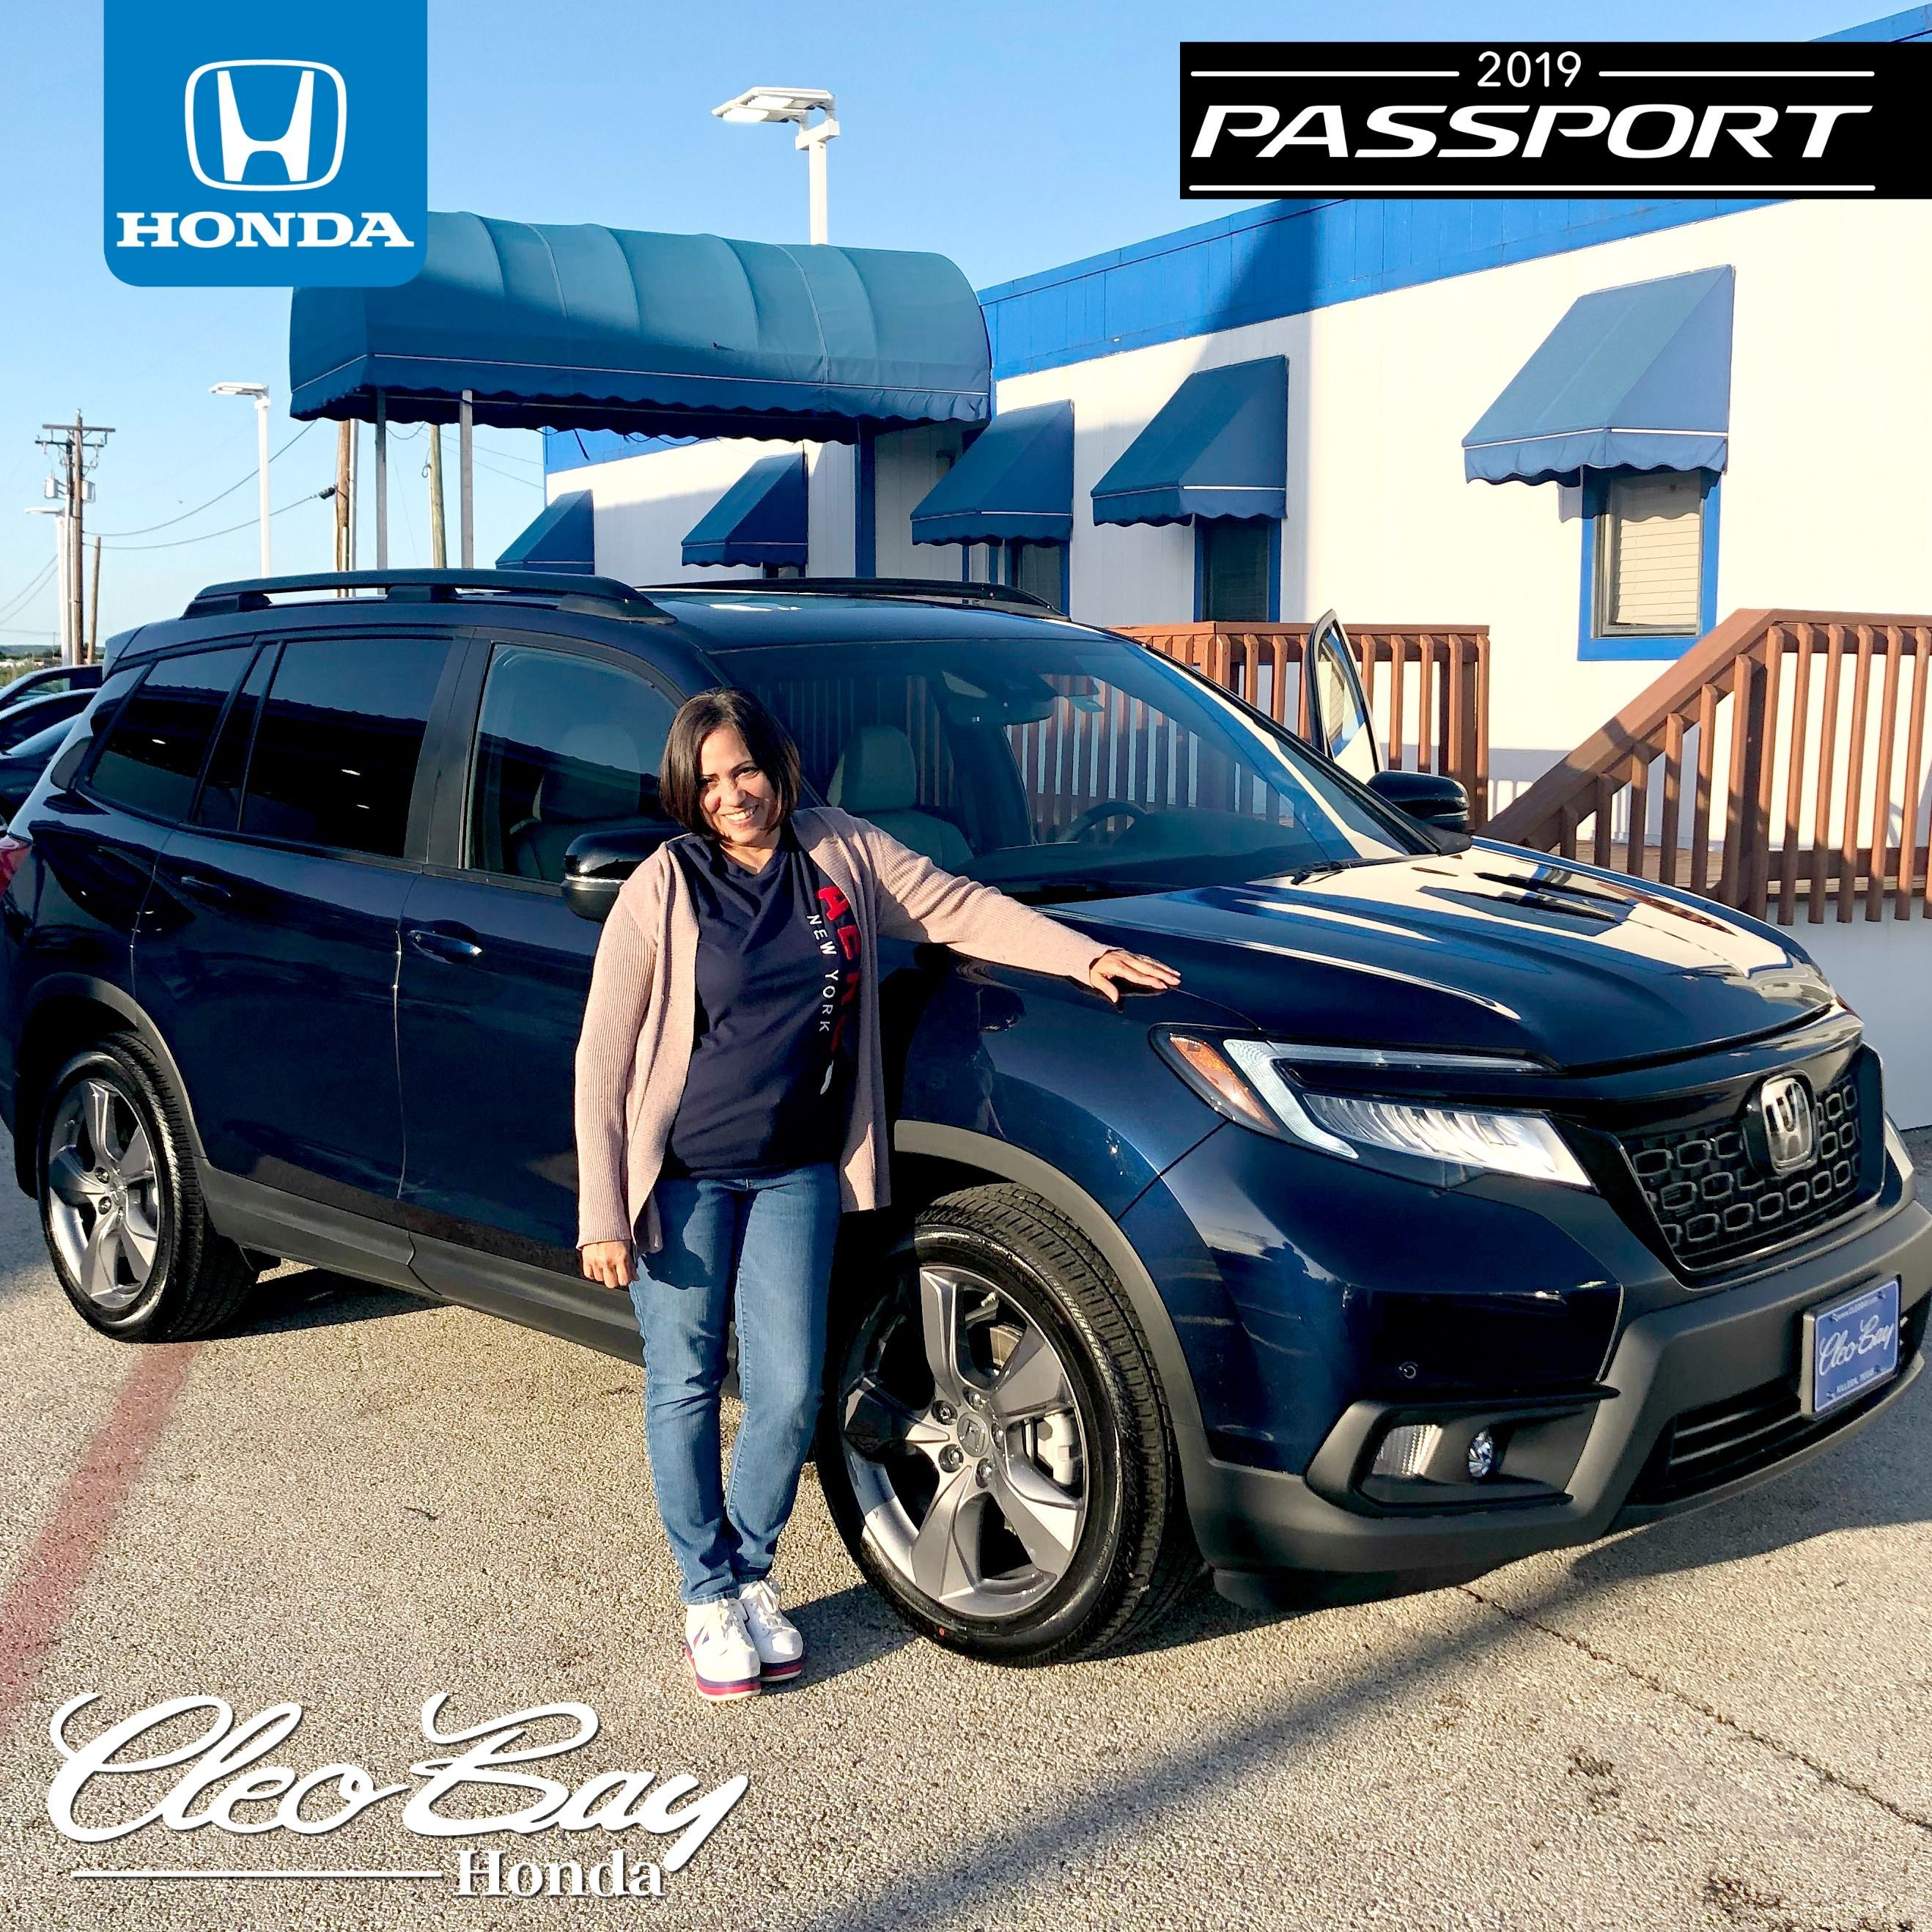 Congratulations Evelyn On Your Recent Purchase Of A New 2019 Honda Passport Touring Click The Pic To Check Out Our Complete Inv Honda Passport New Honda Honda